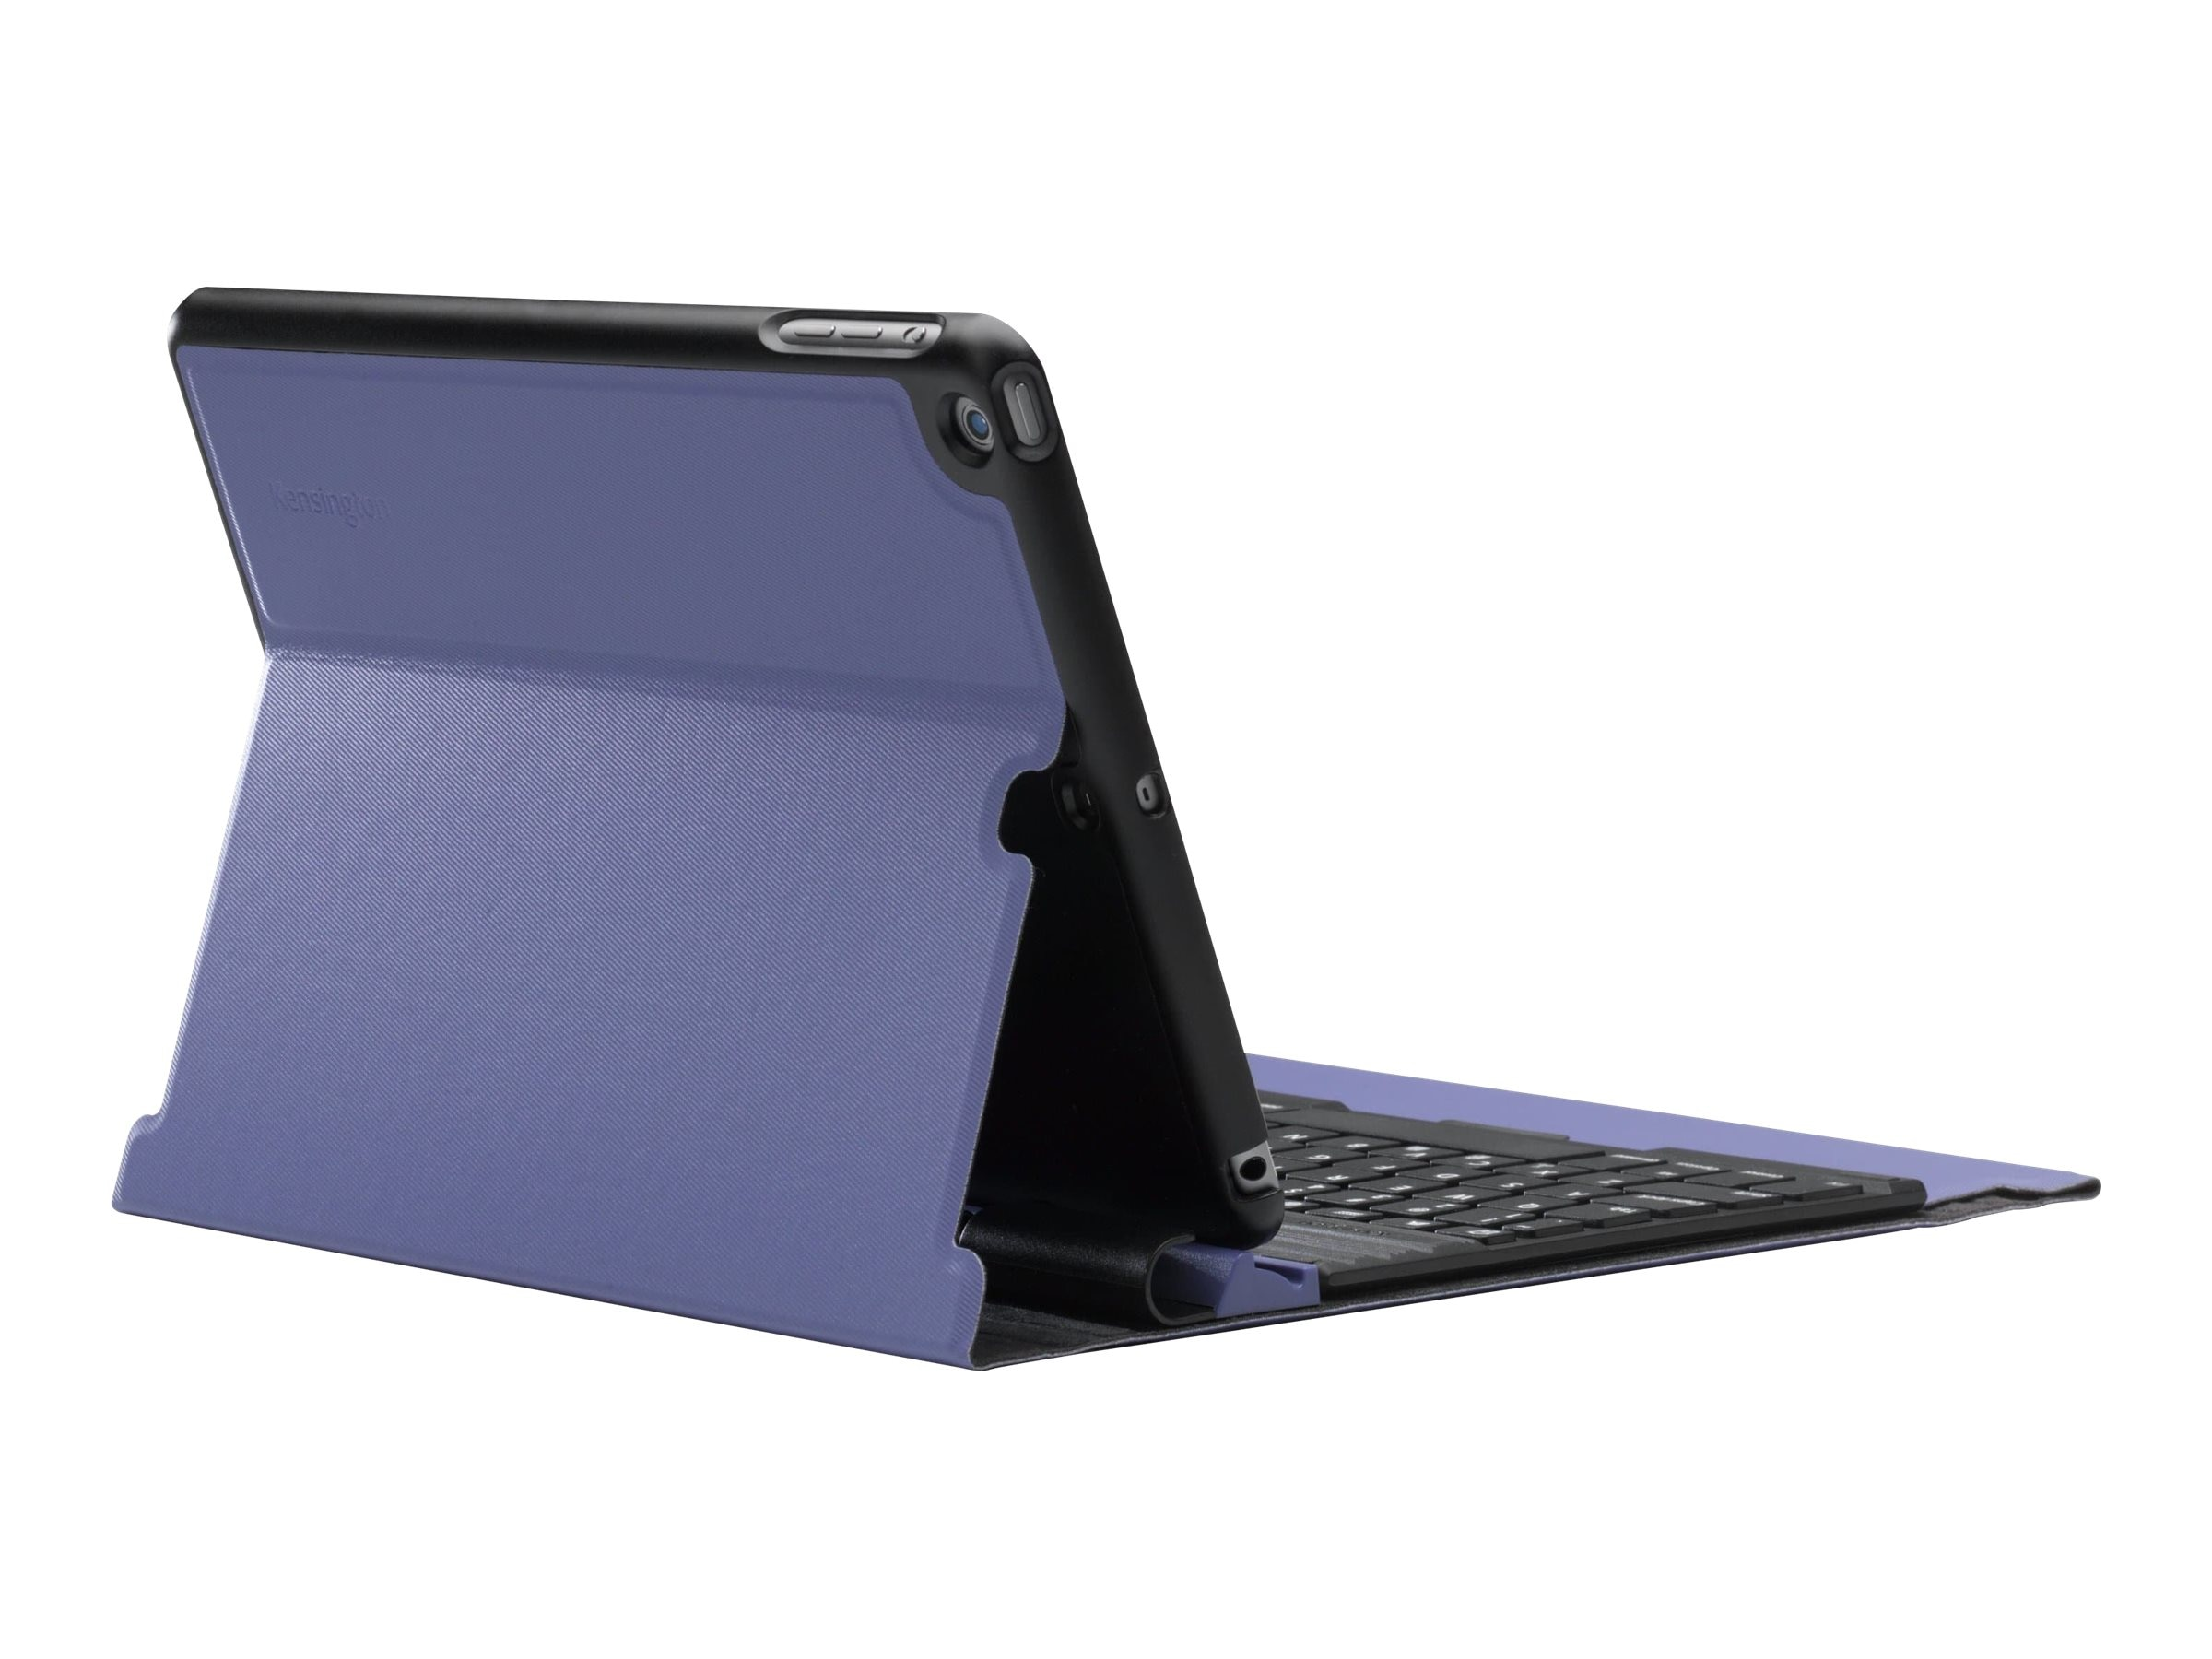 Kensington KeyFolio Exact Thin Folio with Keyboard for iPad Air, Eggplant, K97092US